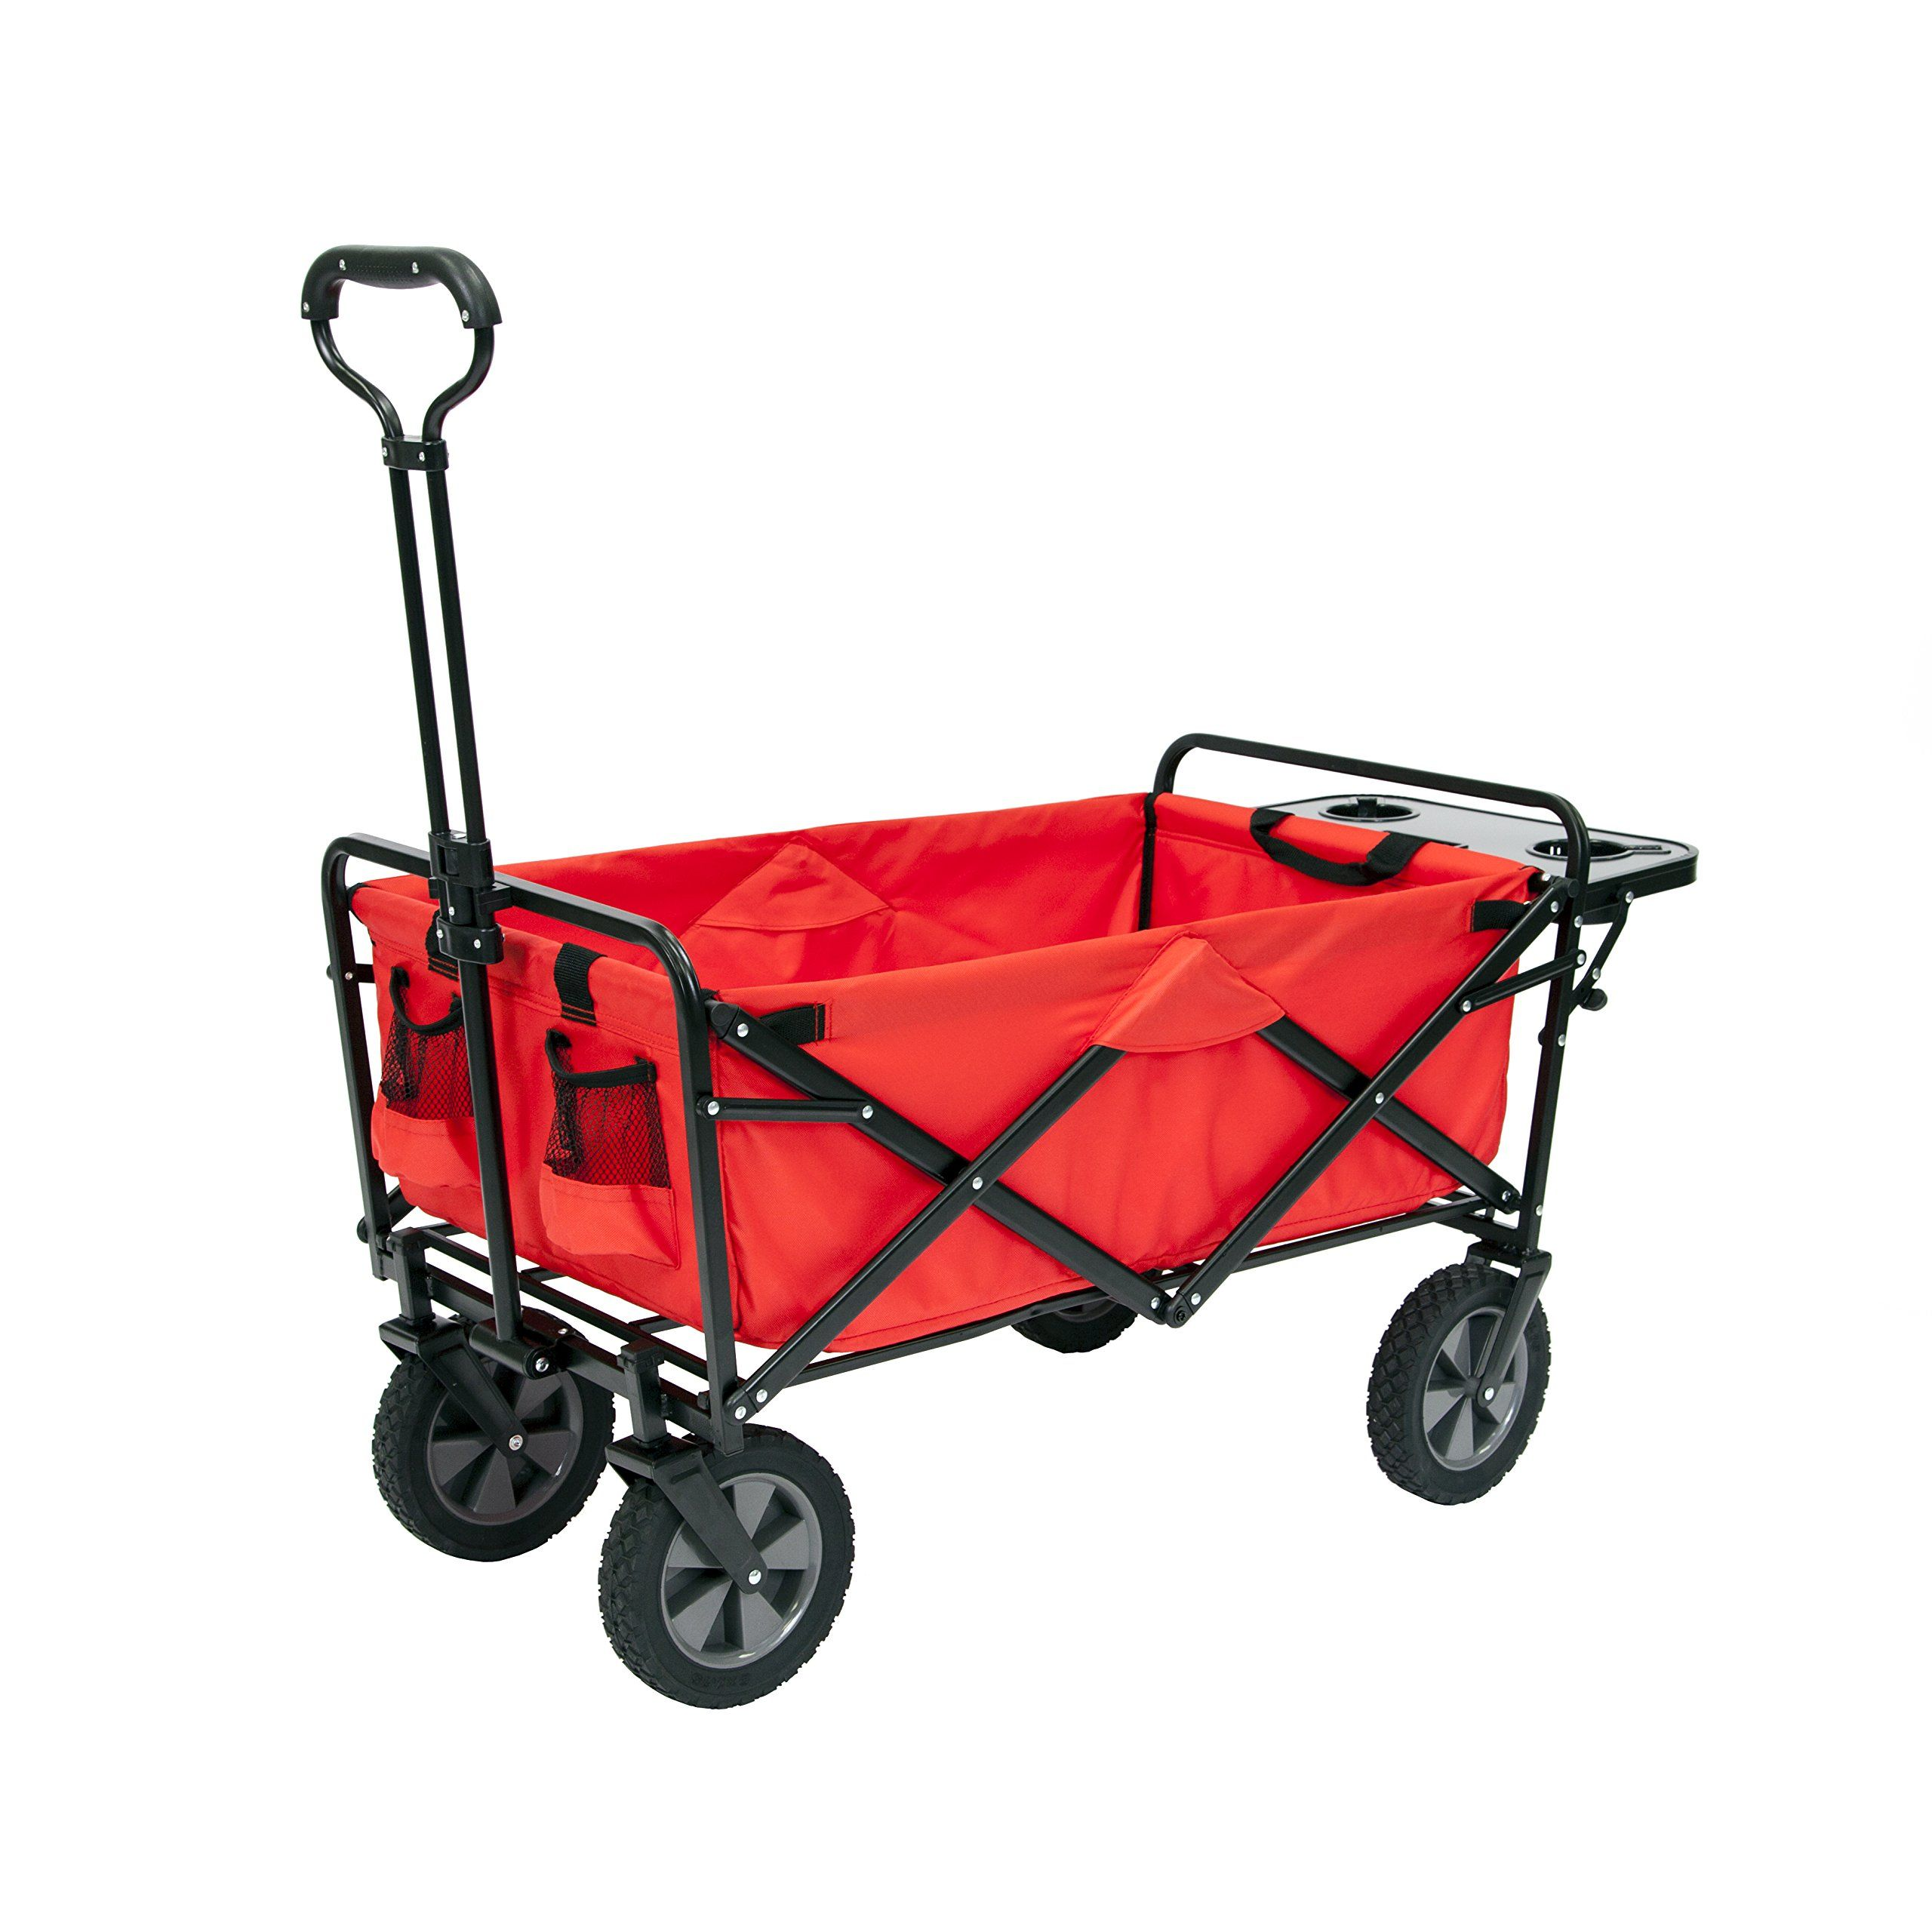 Mac Sports Collapsible Folding Outdoor Utility Wagon Wagon With Side Table Red Check This Awesome Product Utility Wagon Garden Side Table Black Side Table